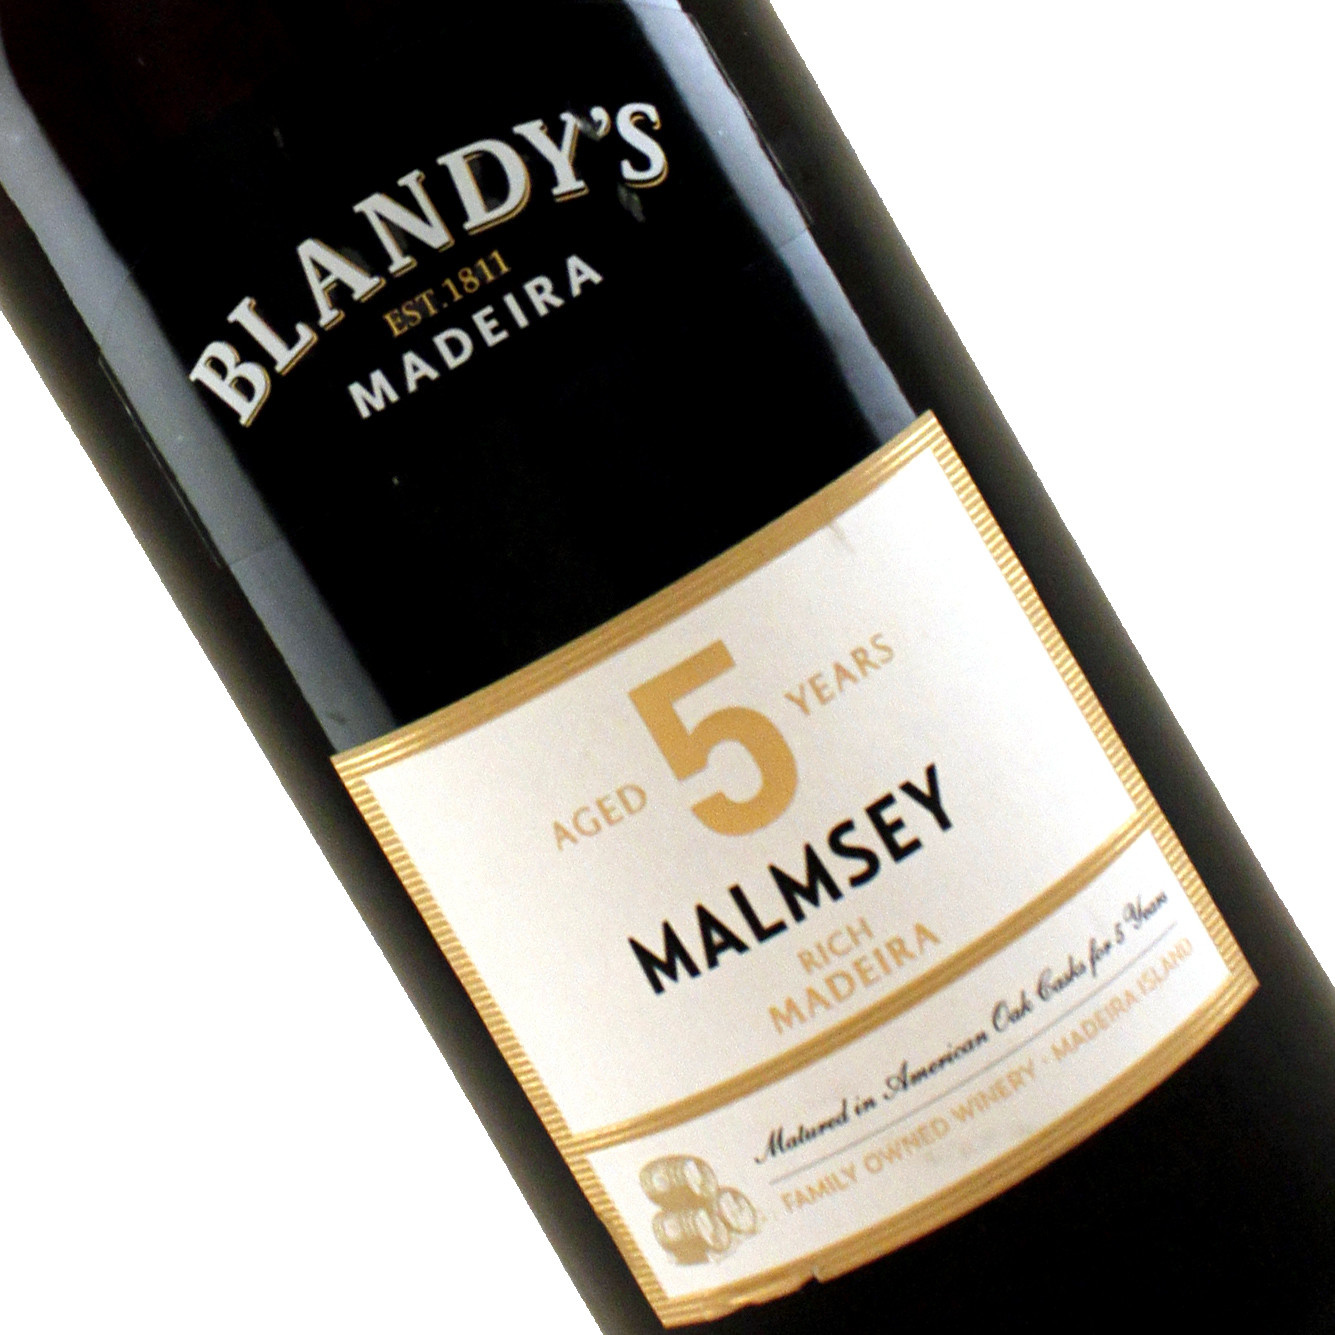 Blandy's 5 Year Old Malmsey, Madeira, Portugal